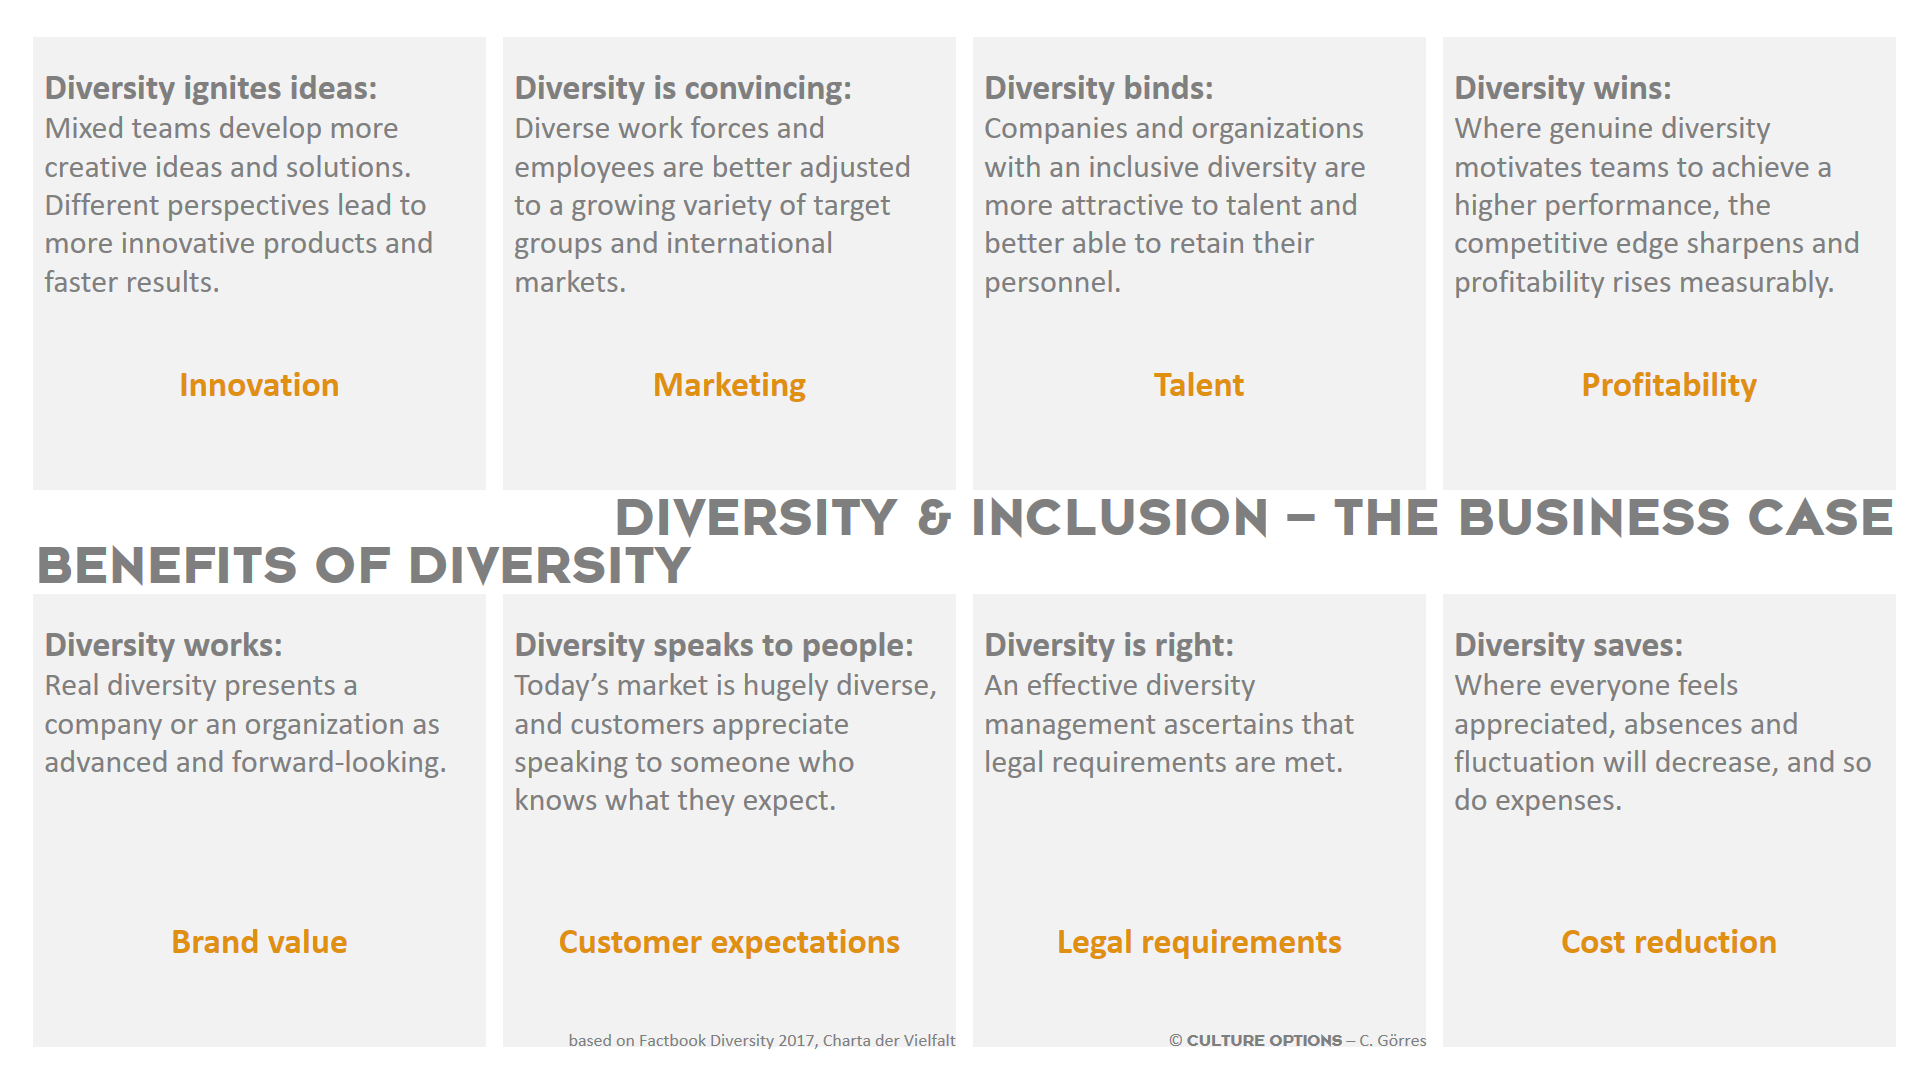 Diversity & Inclusion Business Case